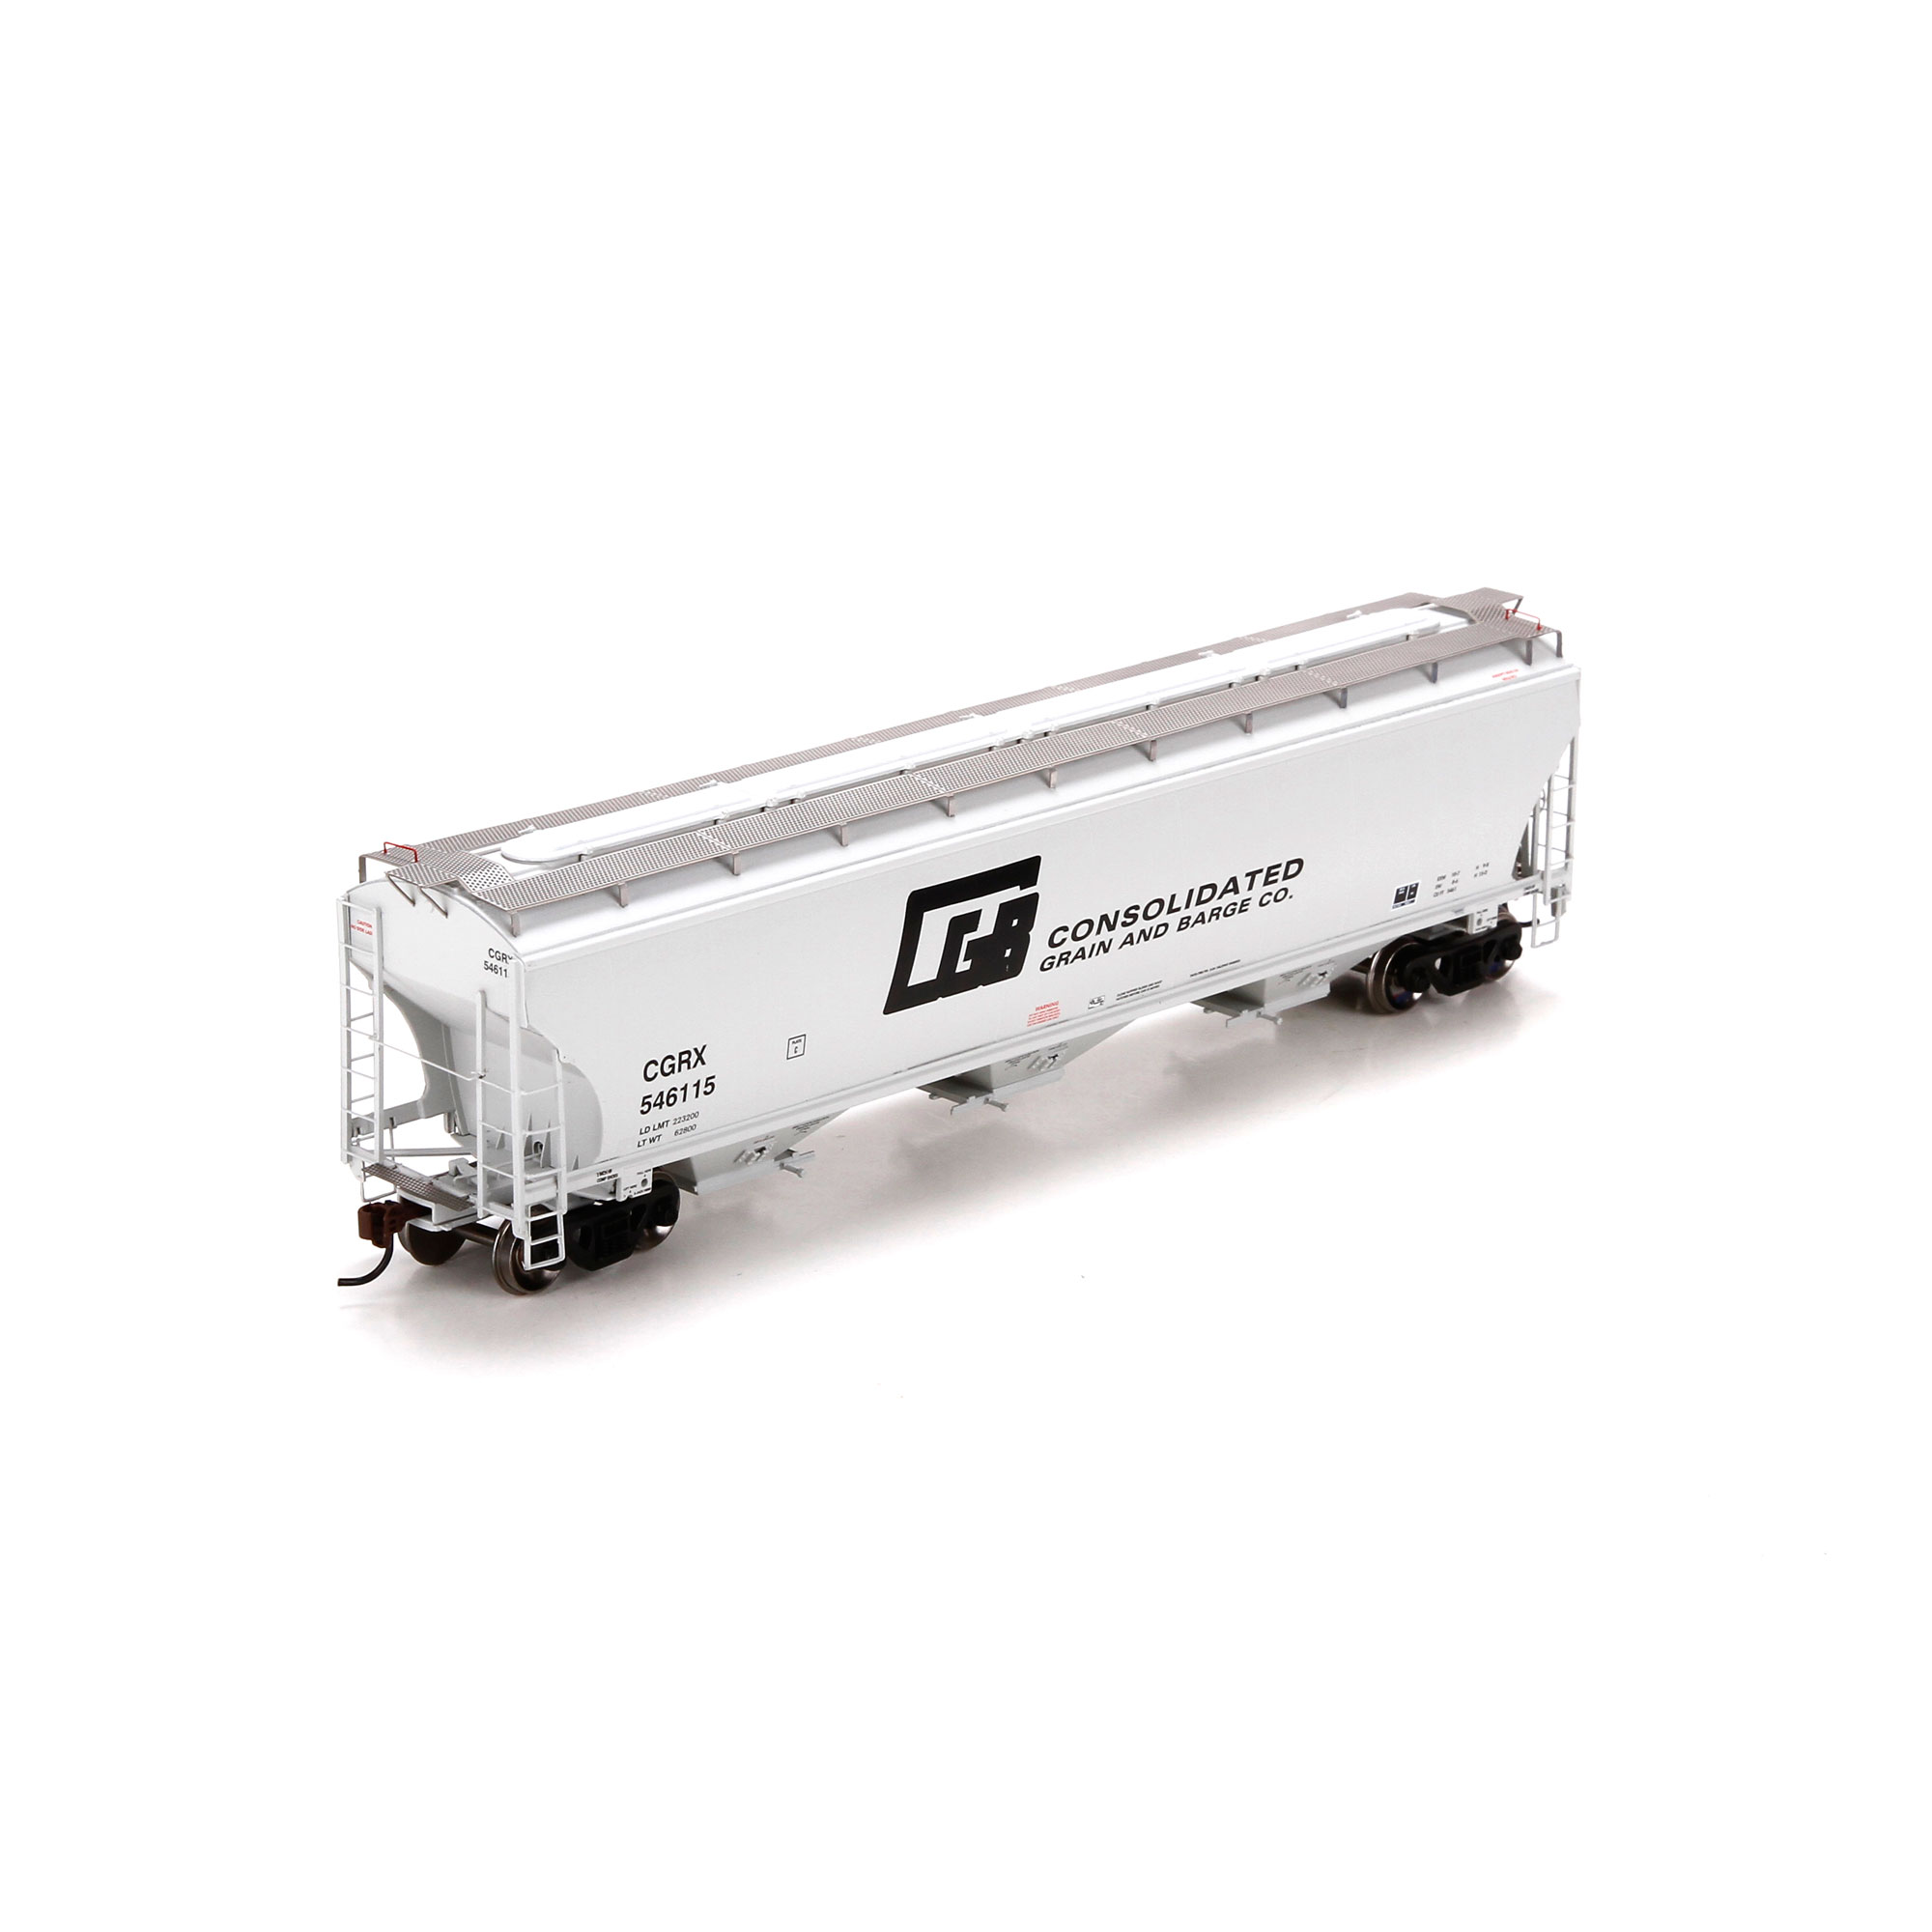 HO RTR Trinity 3-Bay Covered Hopper, CGB #546115